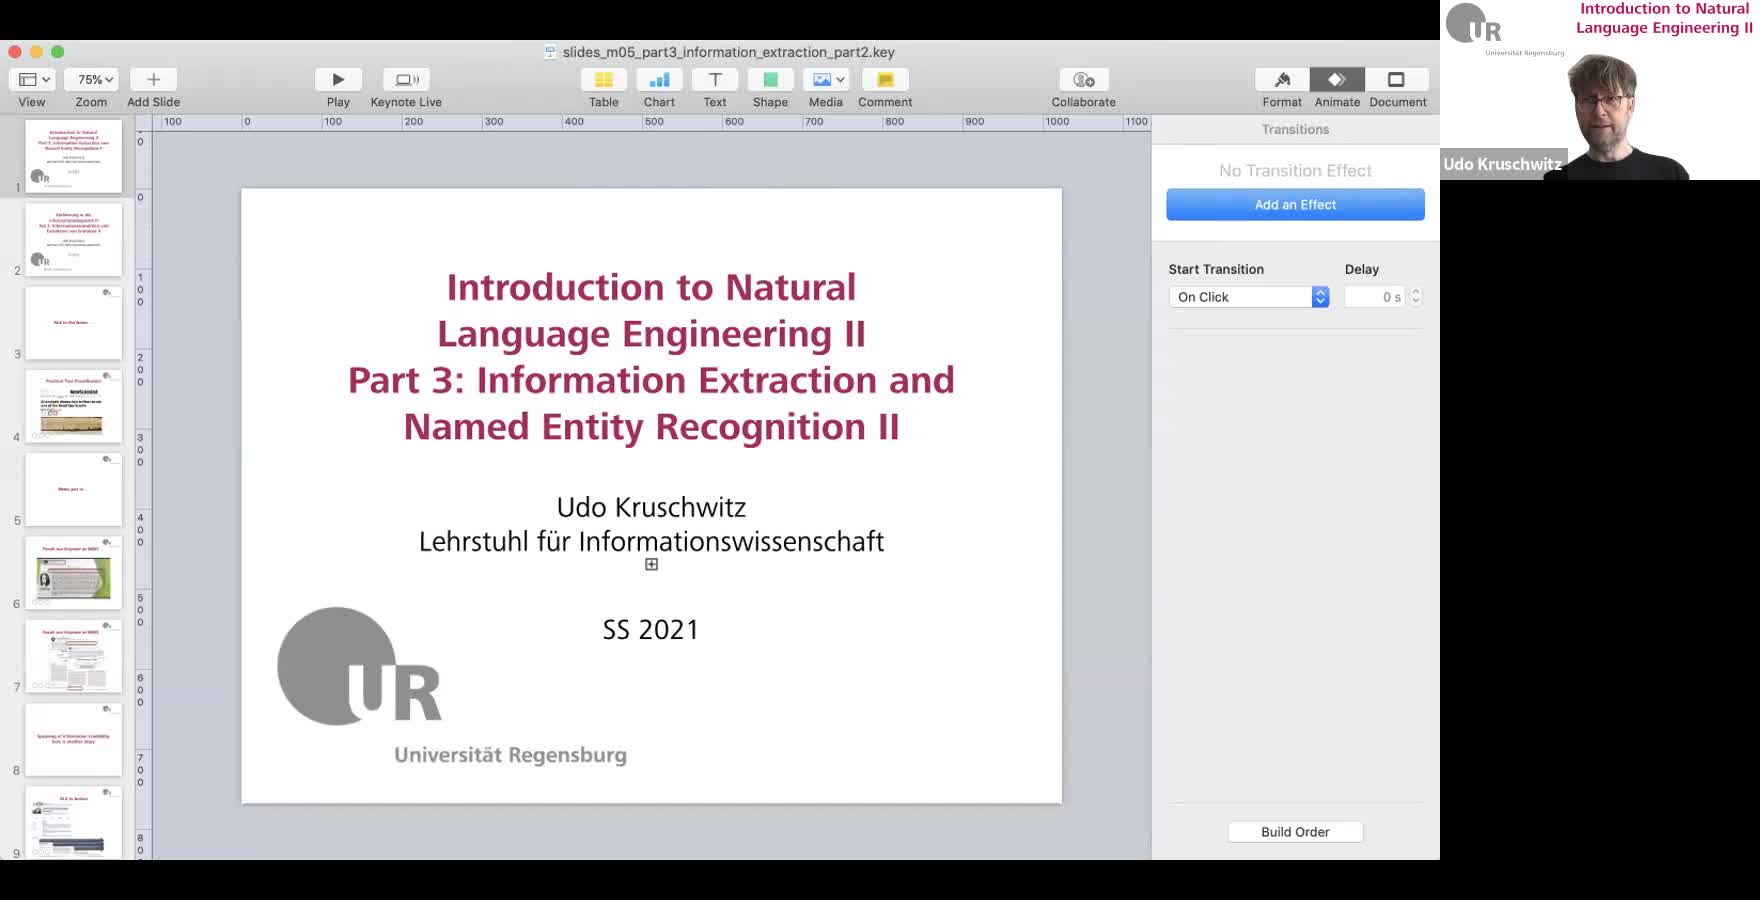 Introduction to Natural Language Engineering 2 / Informationslinguistik 2 - Lecture 3 (Information Extraction and Named Entity Recognition II / Informationsextraktion und Extraktion von Entitäten II)